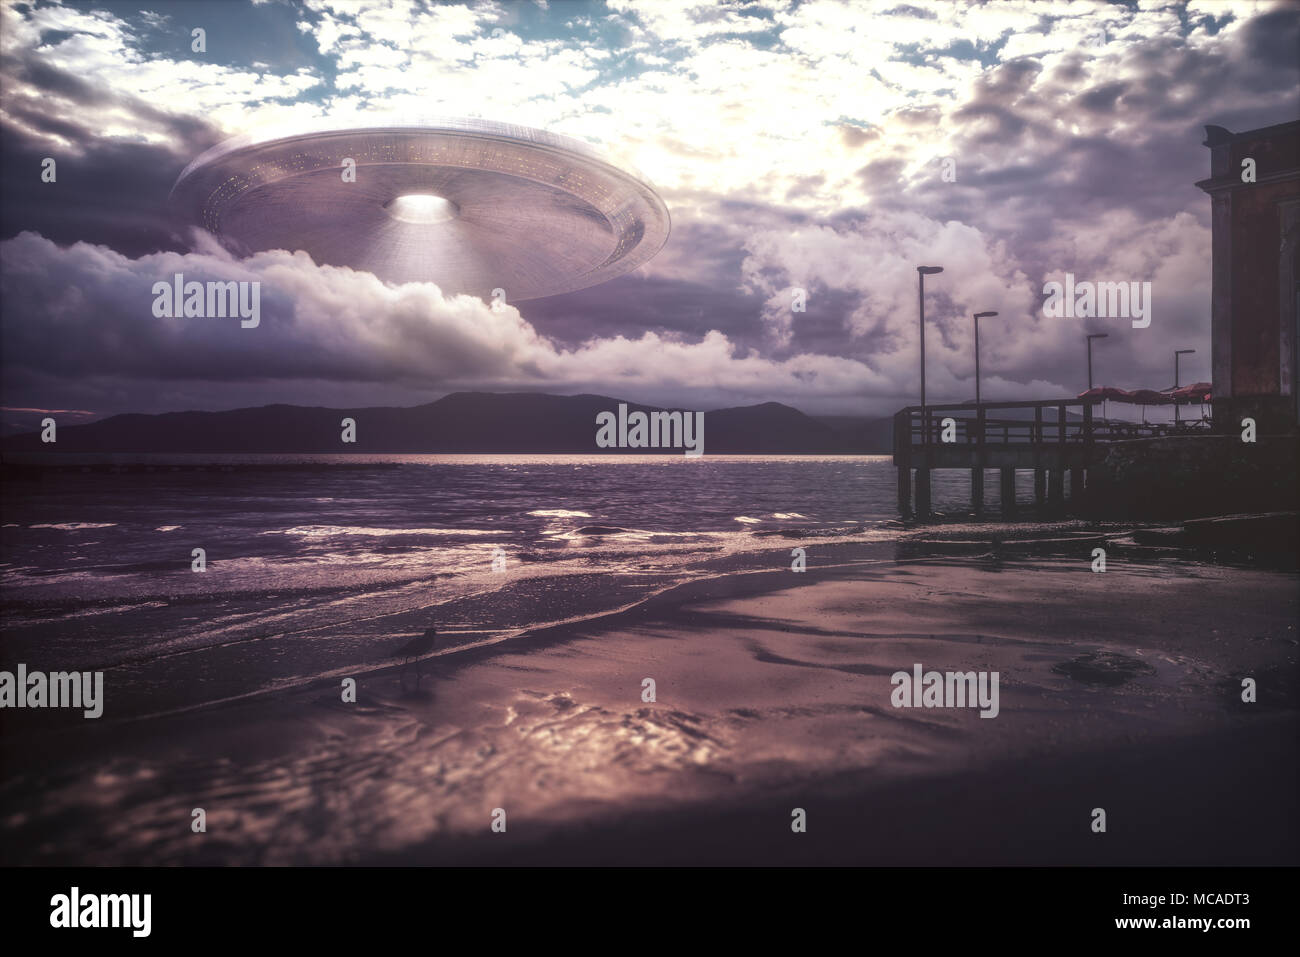 Alien spacecraft coming out of the clouds over the sea. - Stock Image